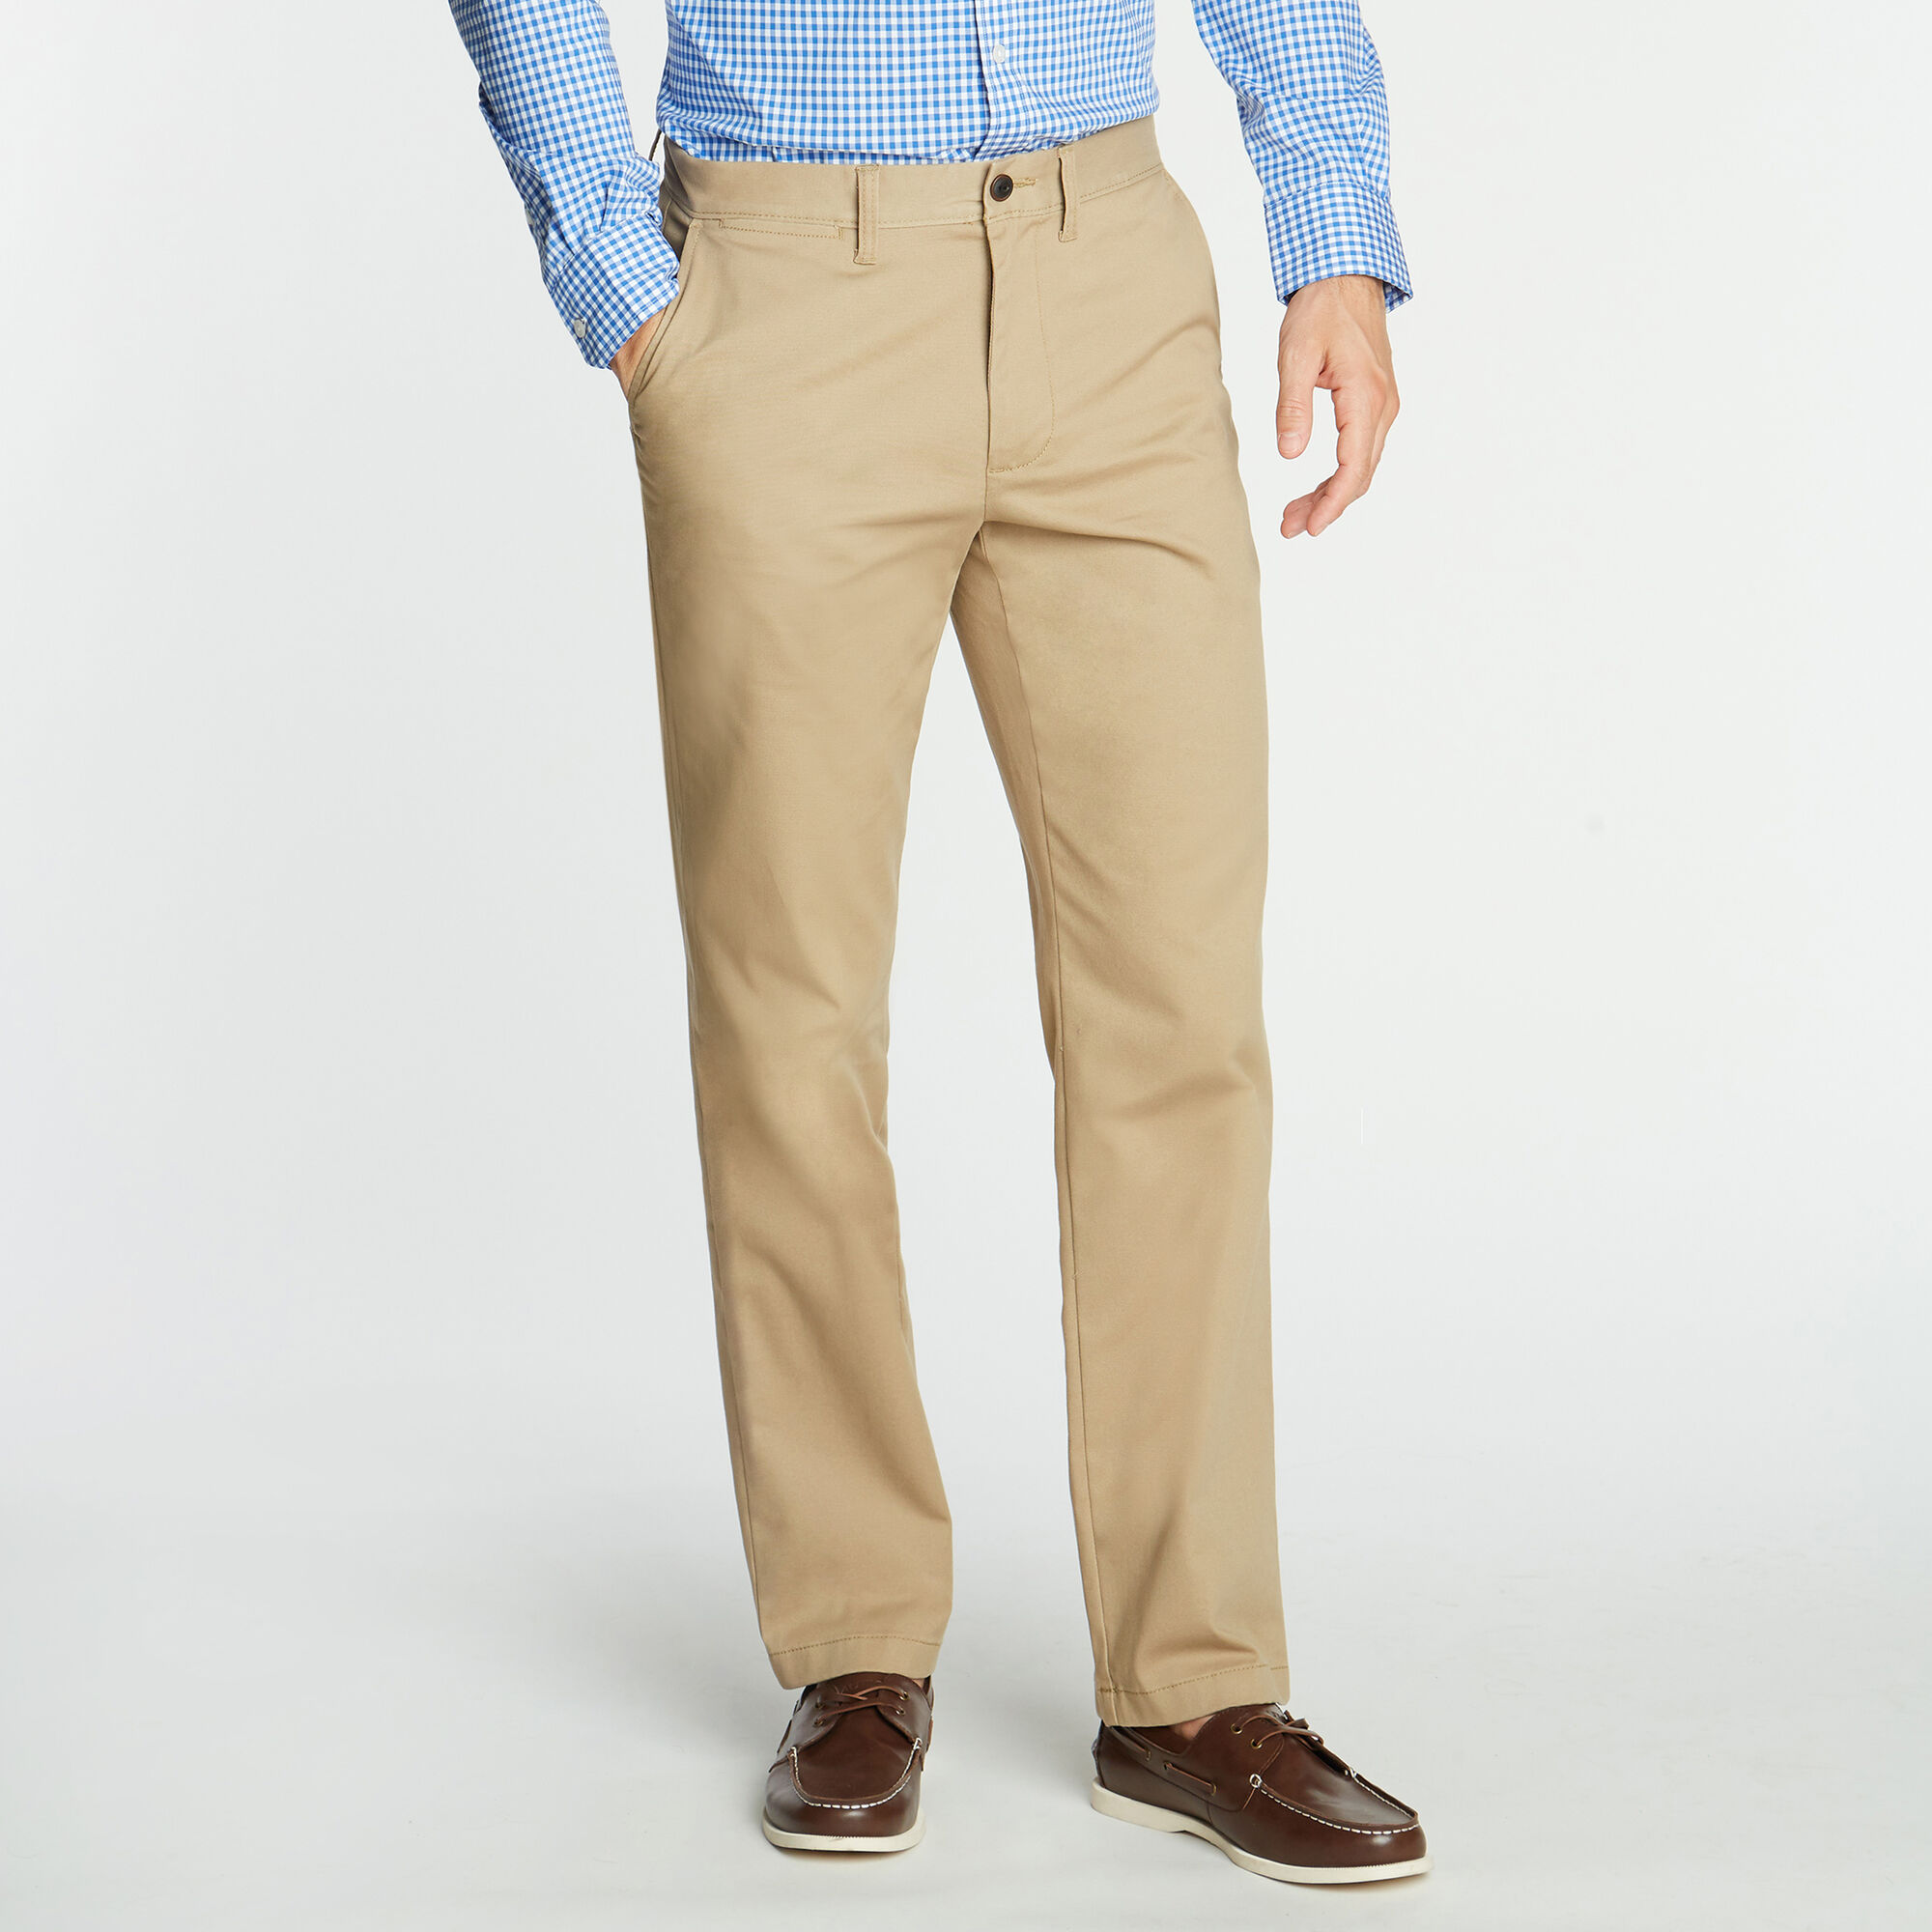 Nautica Mens Classic-Fit Wrinkle-Resistant Deck Pants